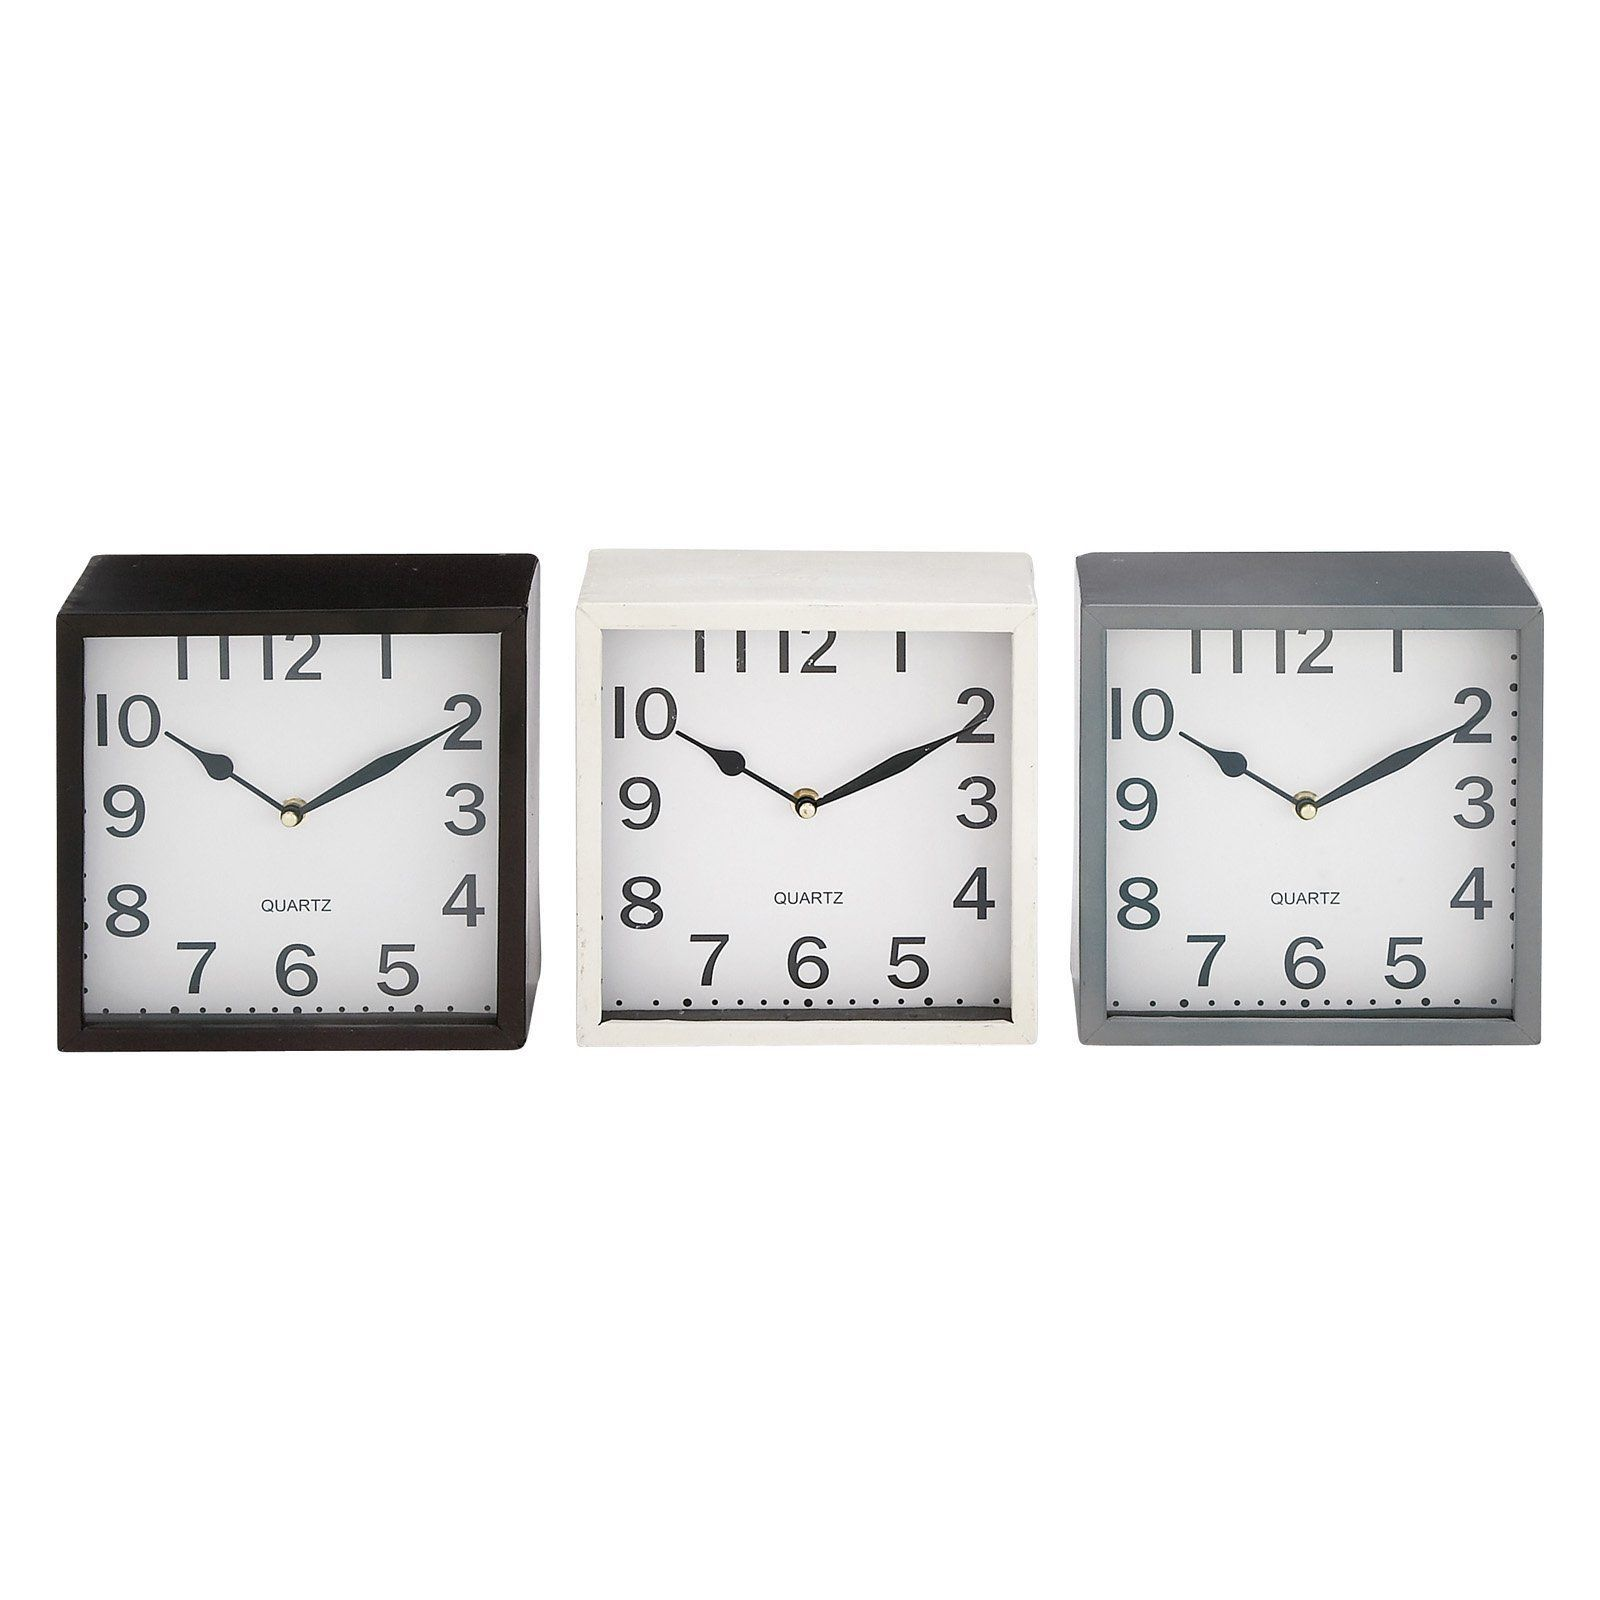 DecMode Square Metal Desktop Clock - Set of 3 - 92271 | Products ...